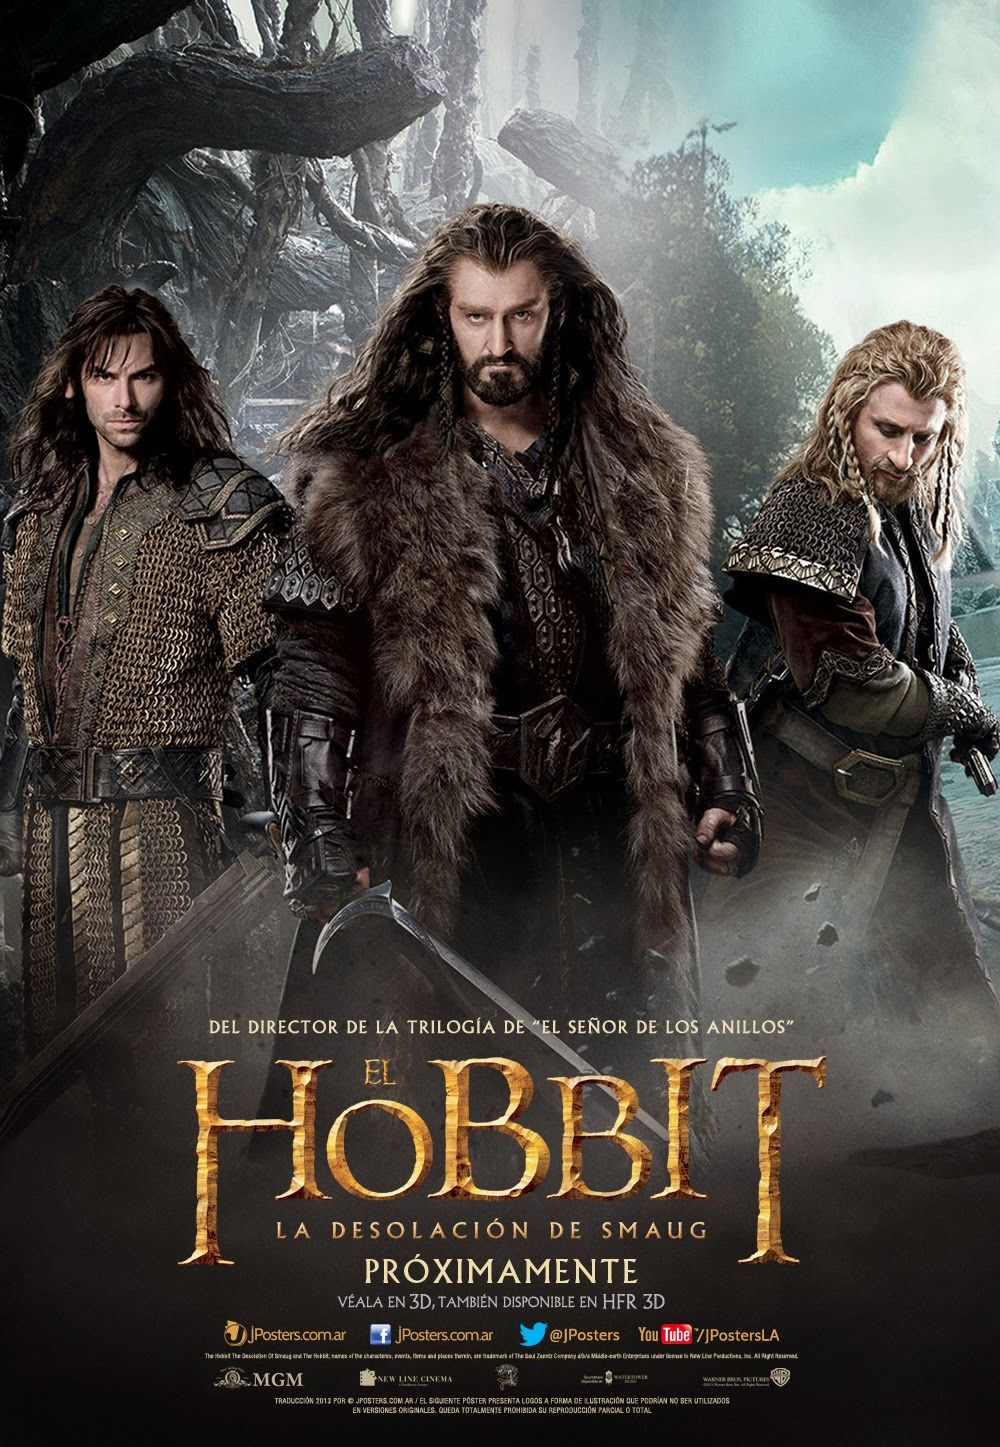 The Hobbit The Desolation Of Smaug 2013 The Hobbit The Hobbit Movies Desolation Of Smaug